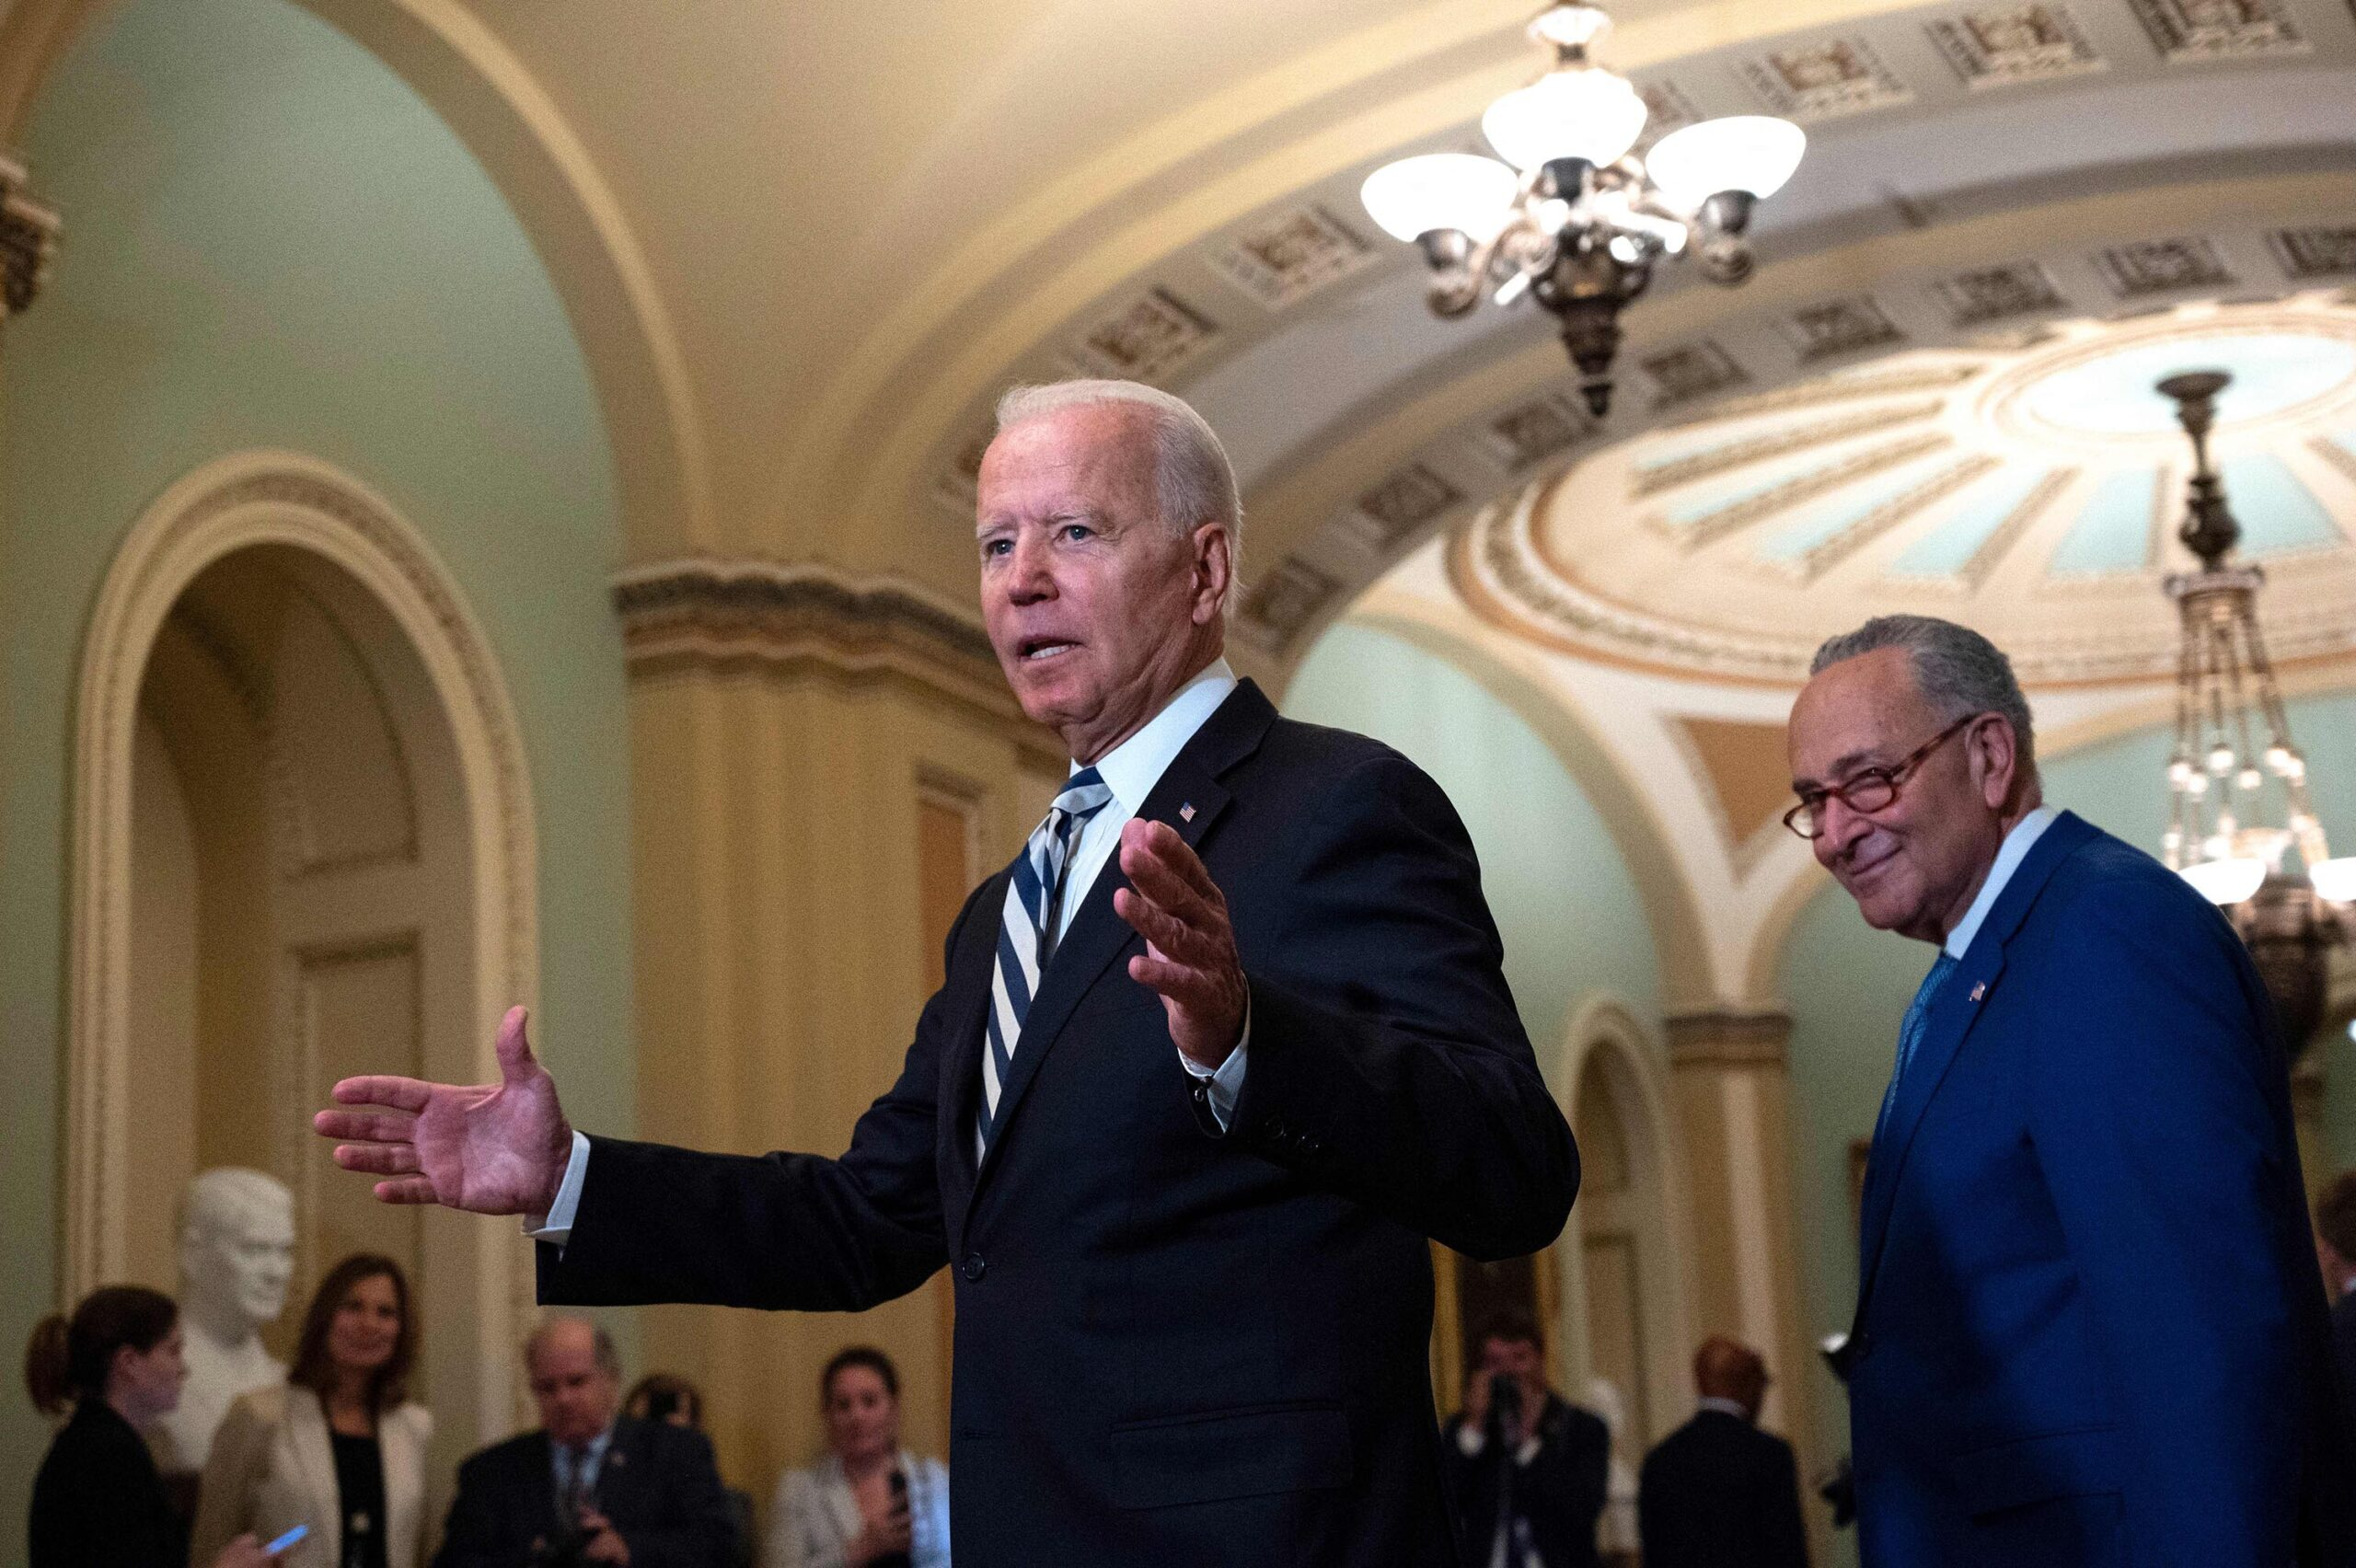 <i>Andre Caballero-Reynolds/AFP/Getty Images</i><br/>President Joe Biden may have started this week with a foreign policy-heavy schedule